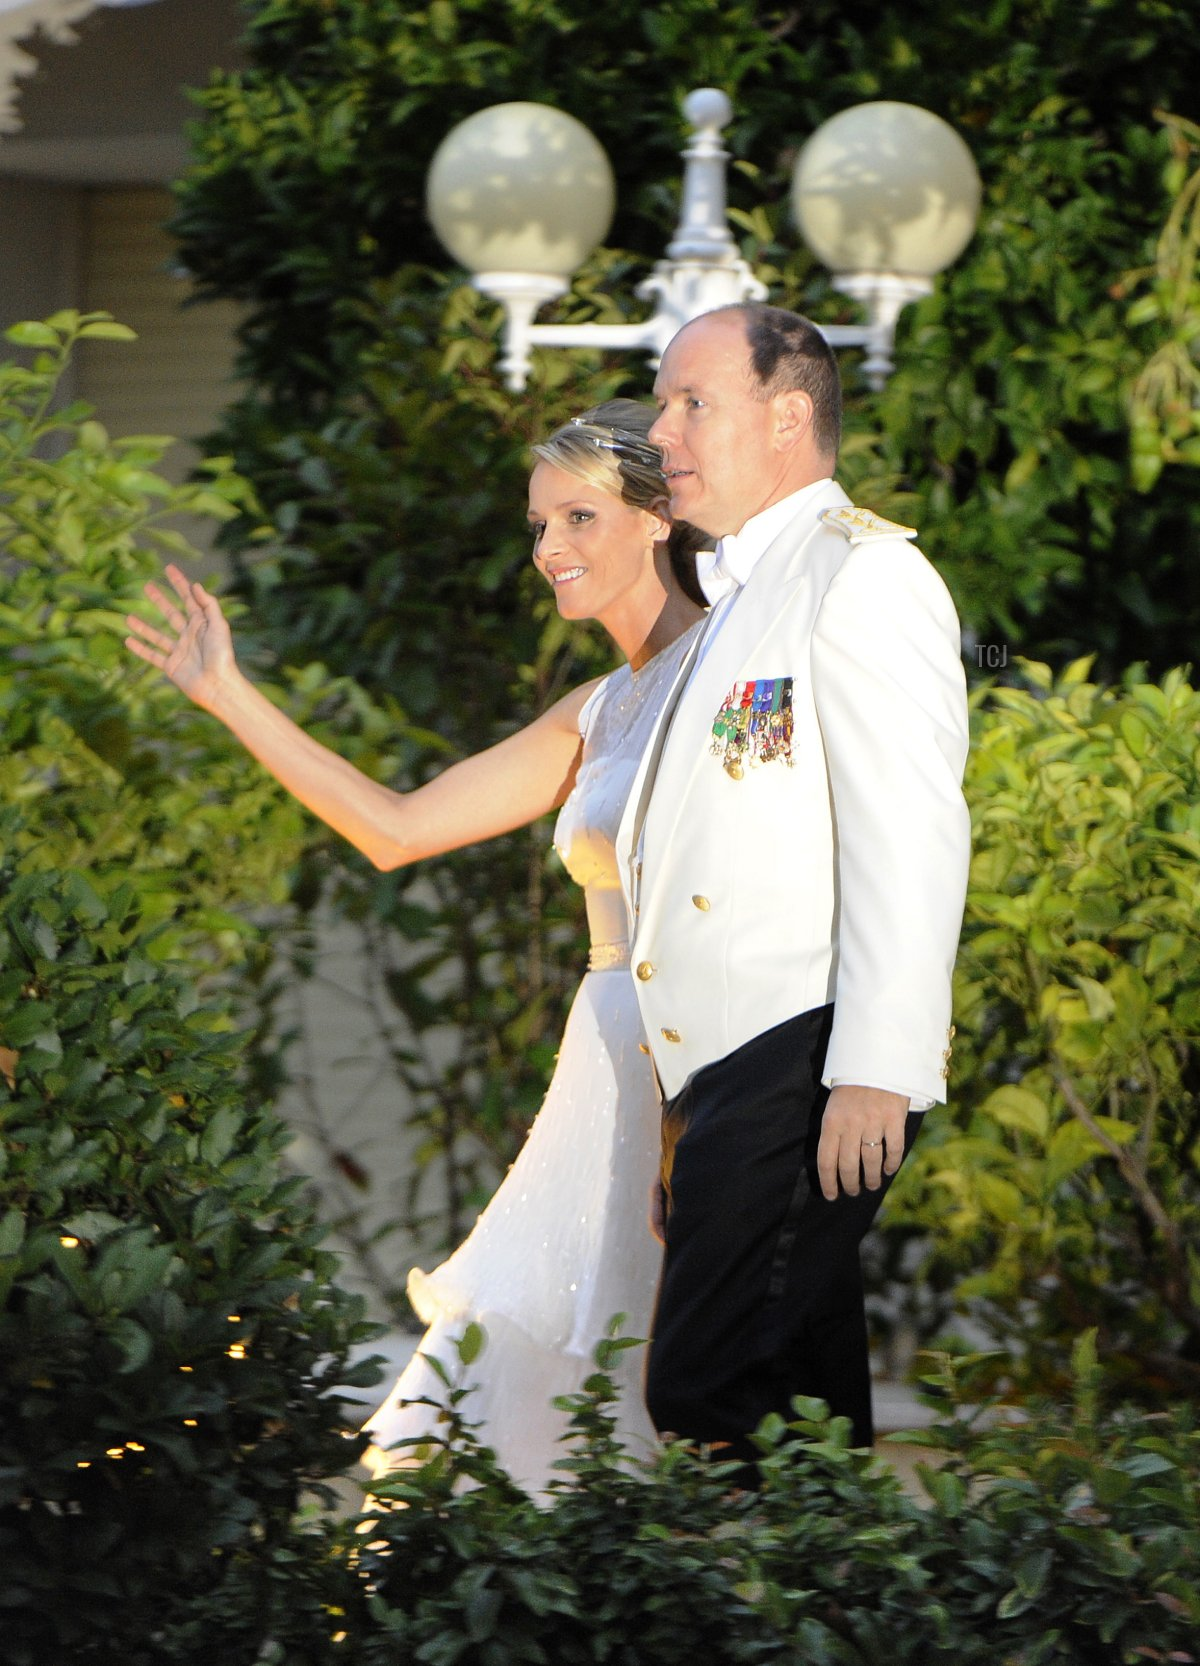 Princess Charlene of Monaco and Prince Albert II of Monaco arrive for a dinner at Opera terraces after their religious wedding ceremony on July 2, 2011 in Monaco